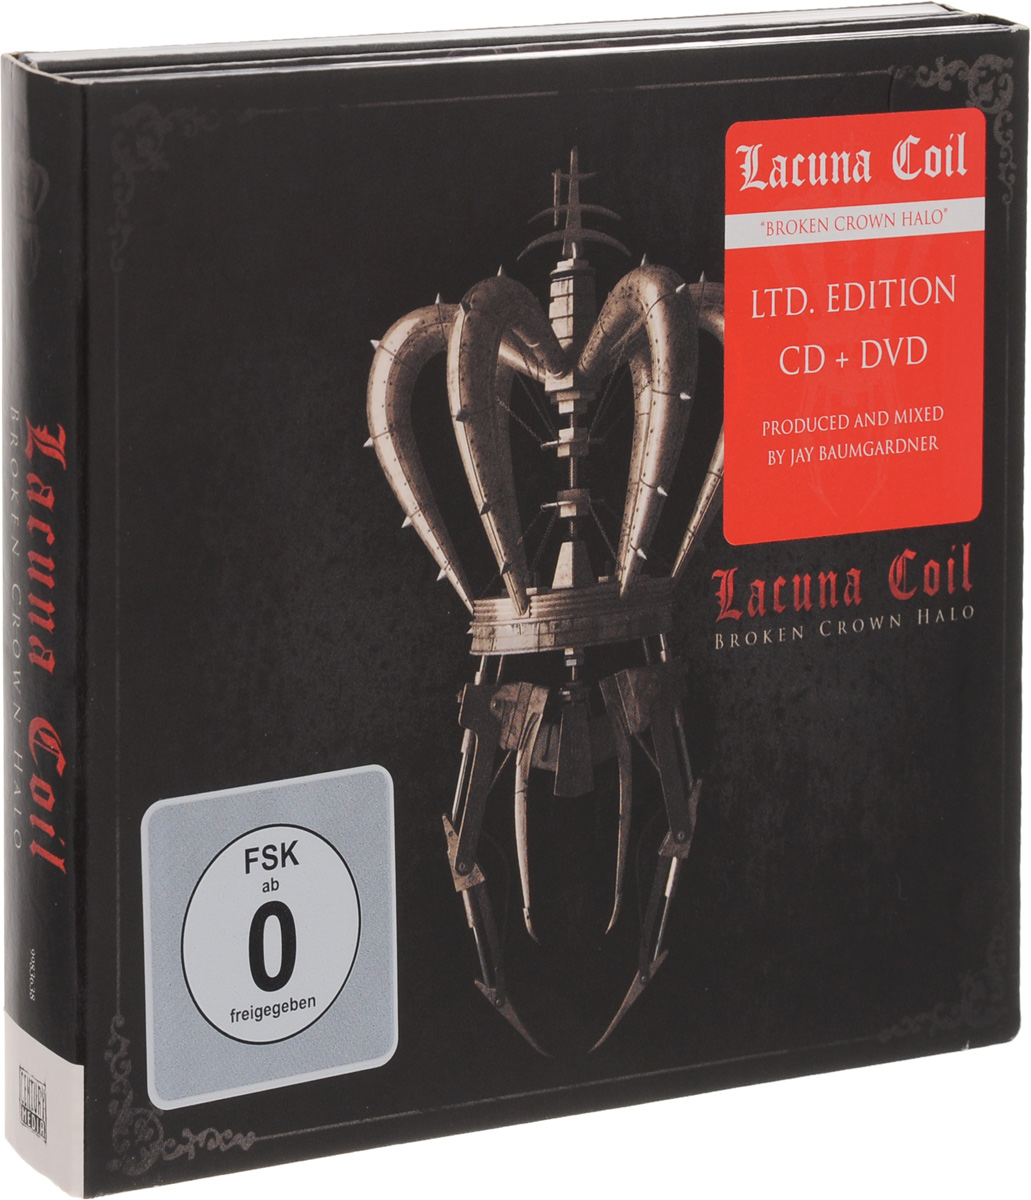 Lacuna Coil. Broken Crown Halo (CD + DVD)